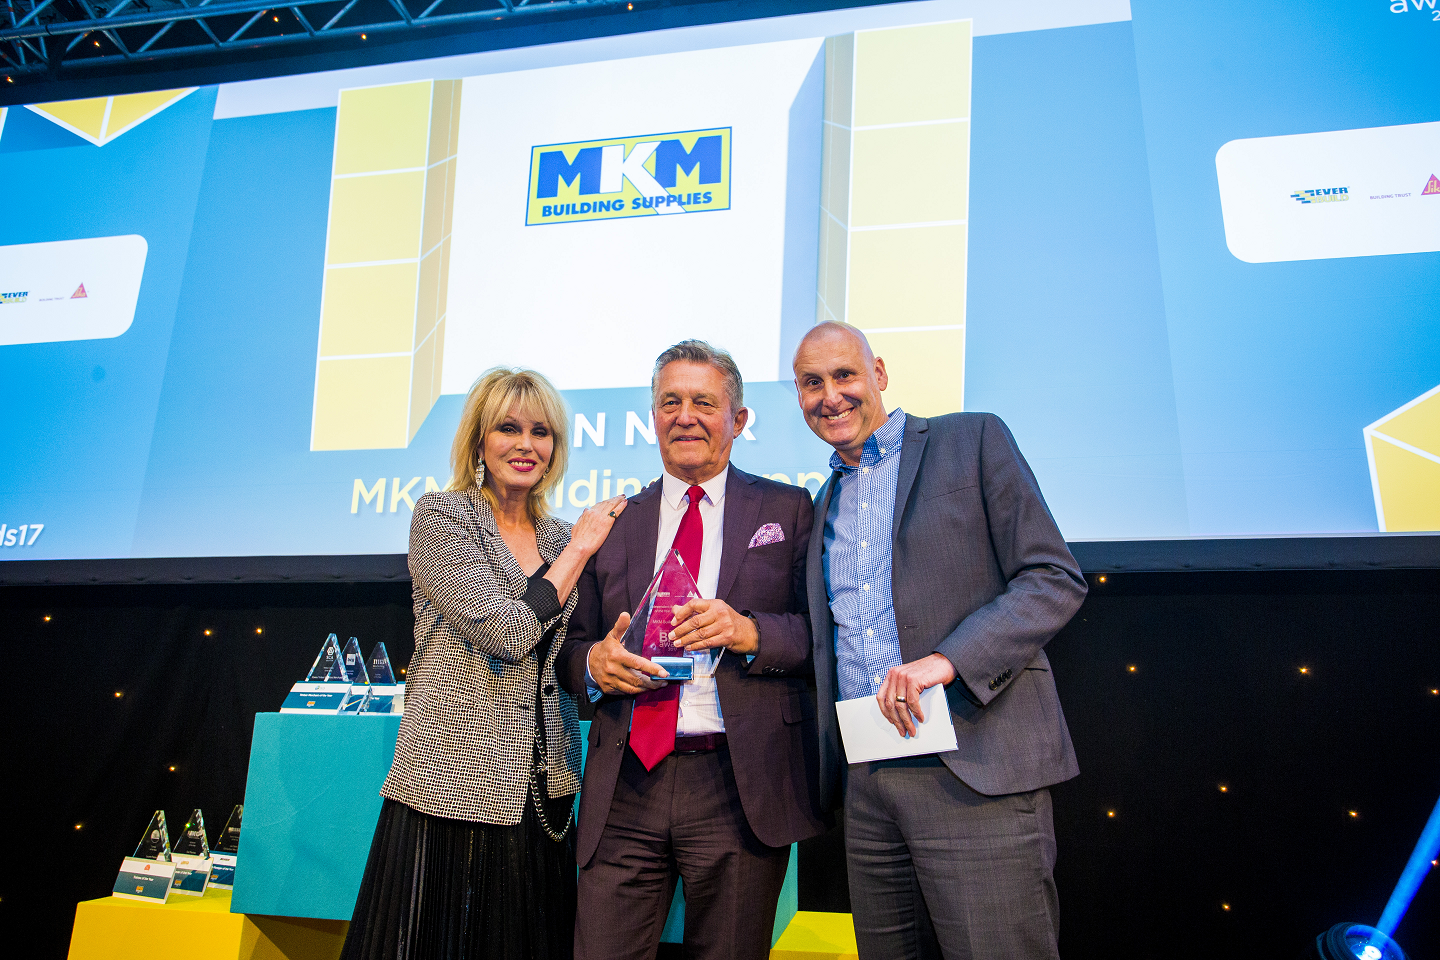 Winner of Independent Builders' Merchant of the Year (26+ branches); Dara O'Briain, David Kilburn, Executive Chairman MKM Building Supplies and Mike Ward, Managing Director, Metsa Wood UK Ltd